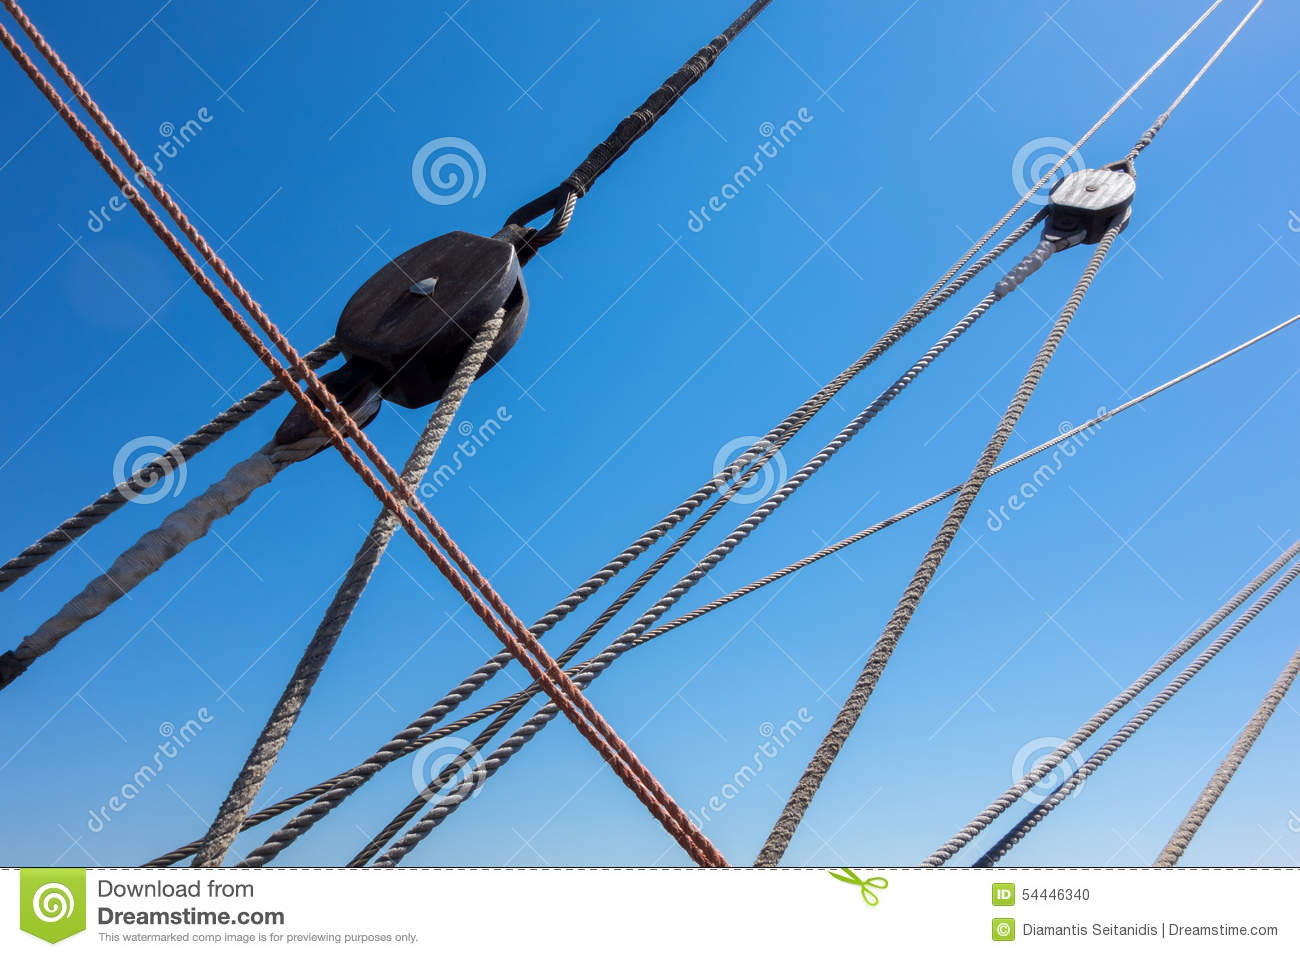 Marine Rope Ladder At Pirate Ship Stock Photo - Image: 54446340 for Rope Ladder Ship  66pct